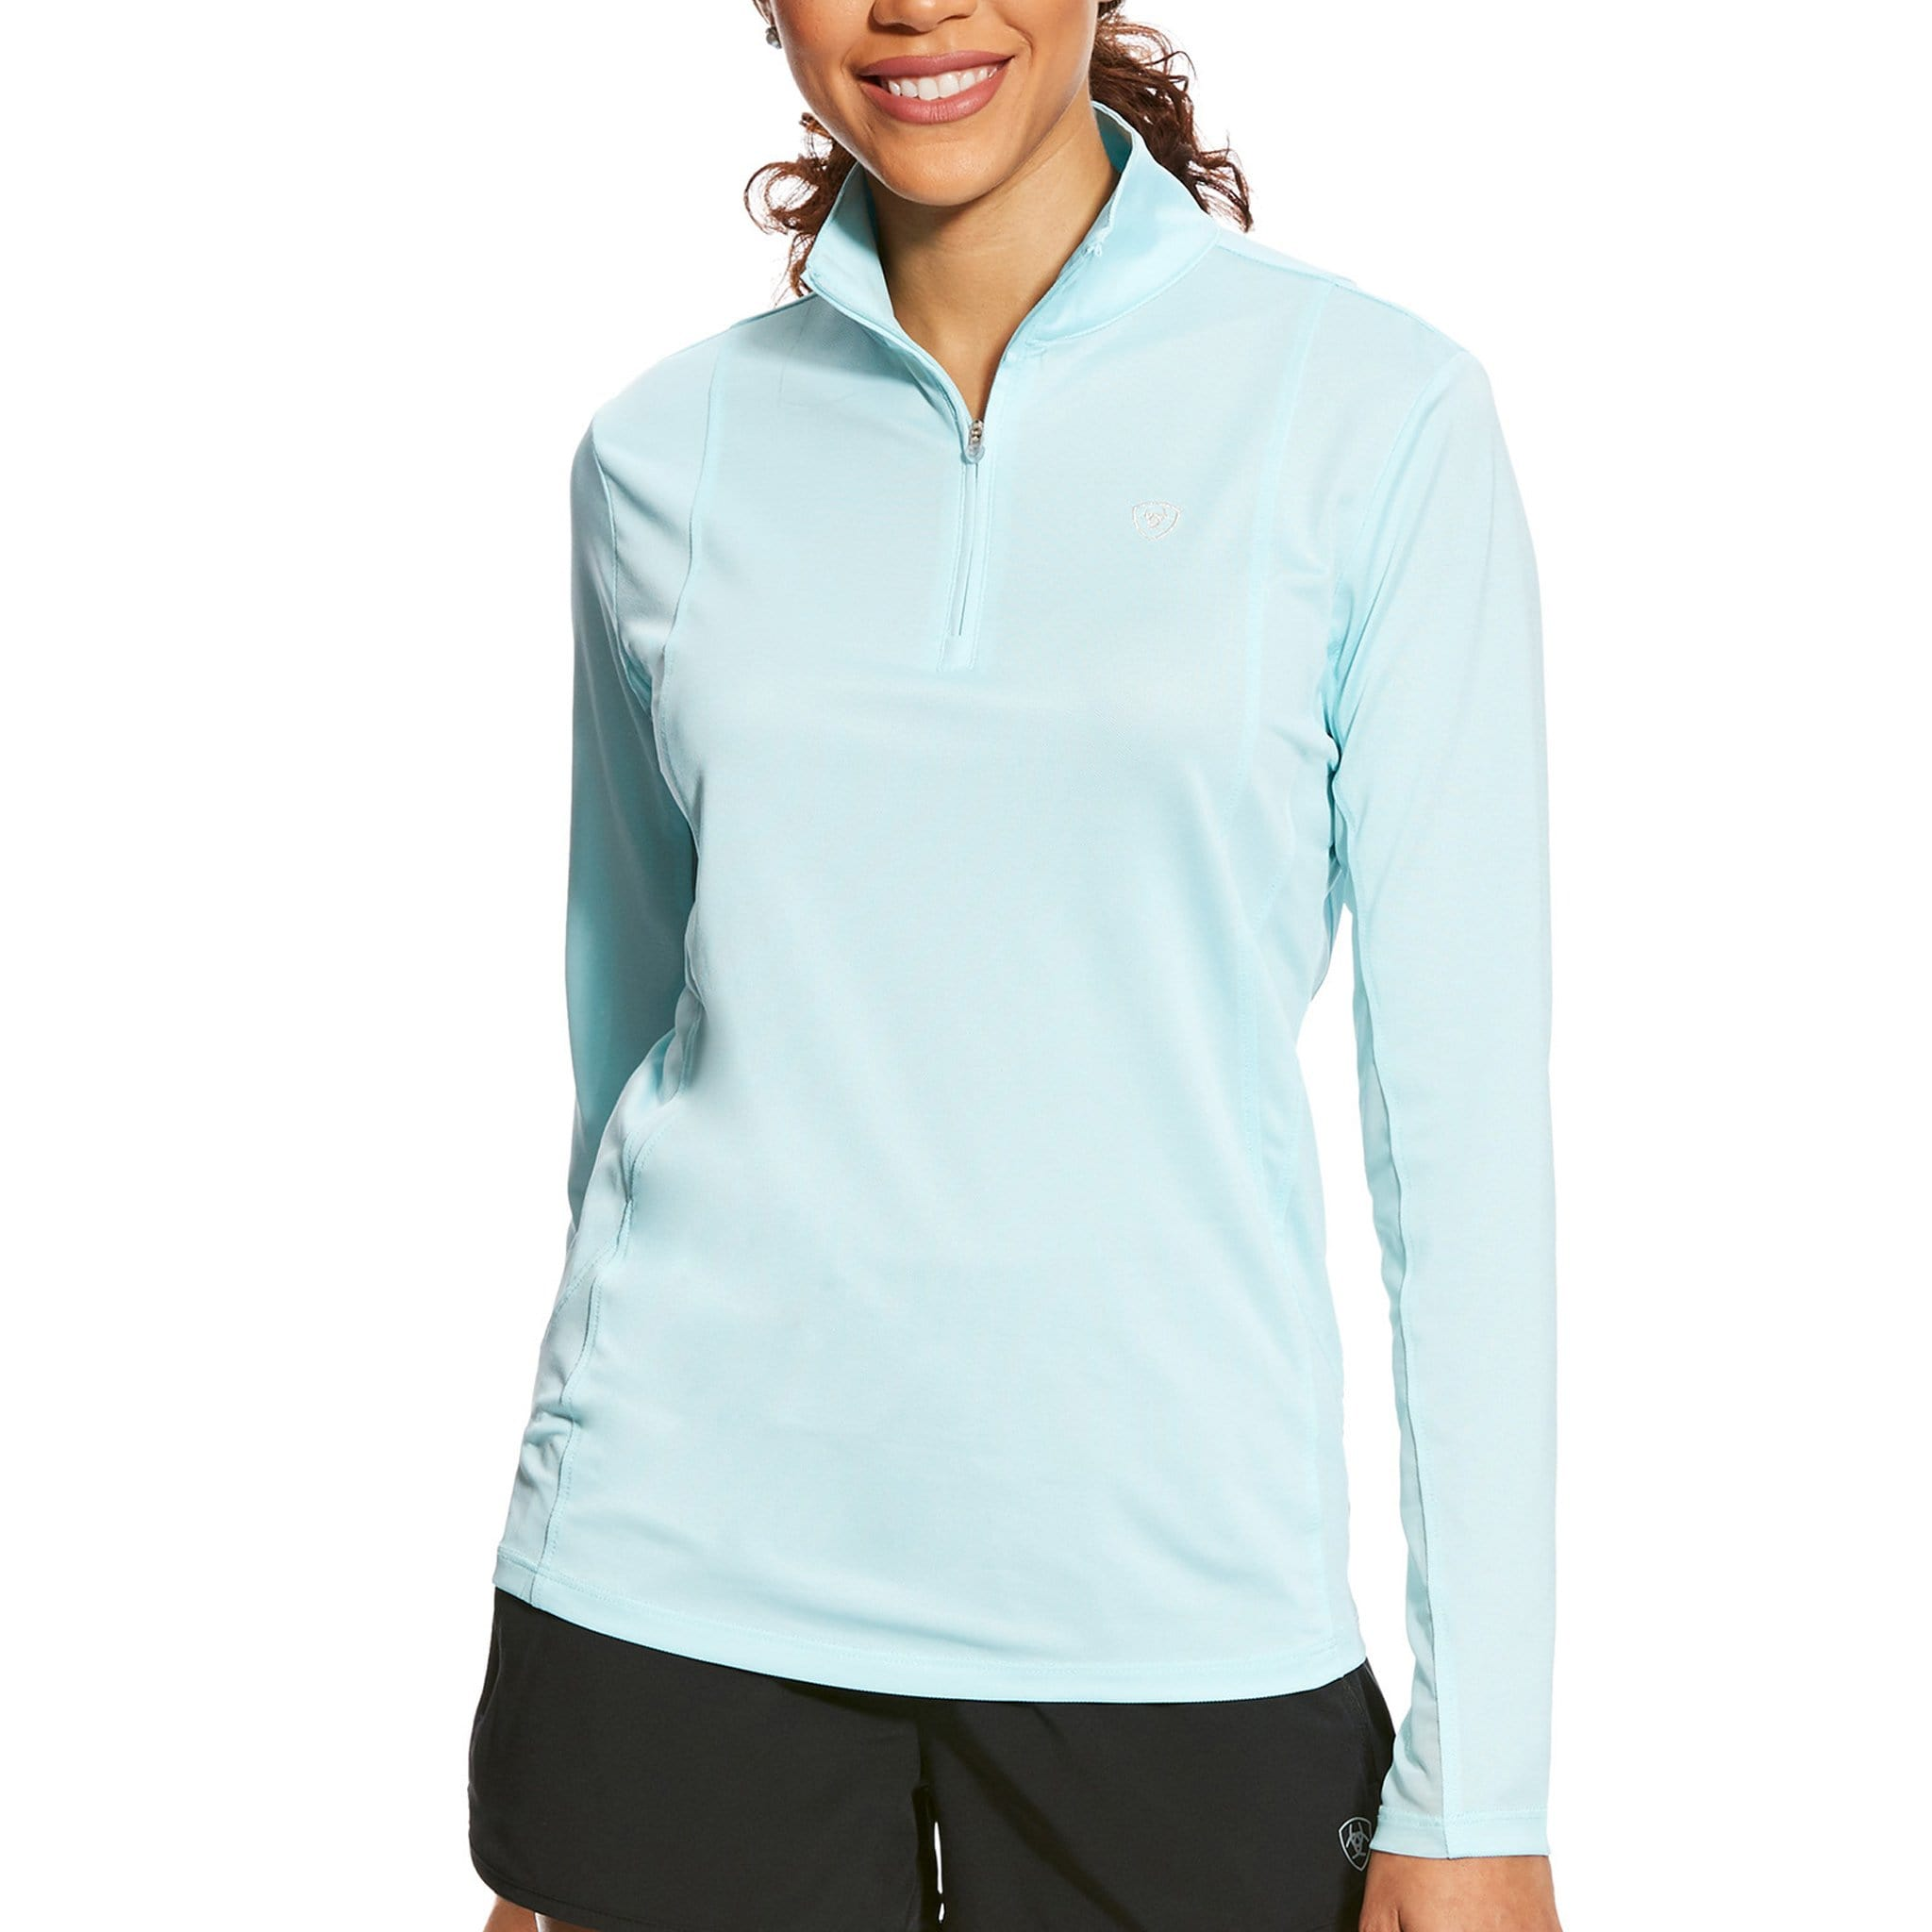 Ariat Sunstopper 1/4 Zip Top Sky Drift 10025664